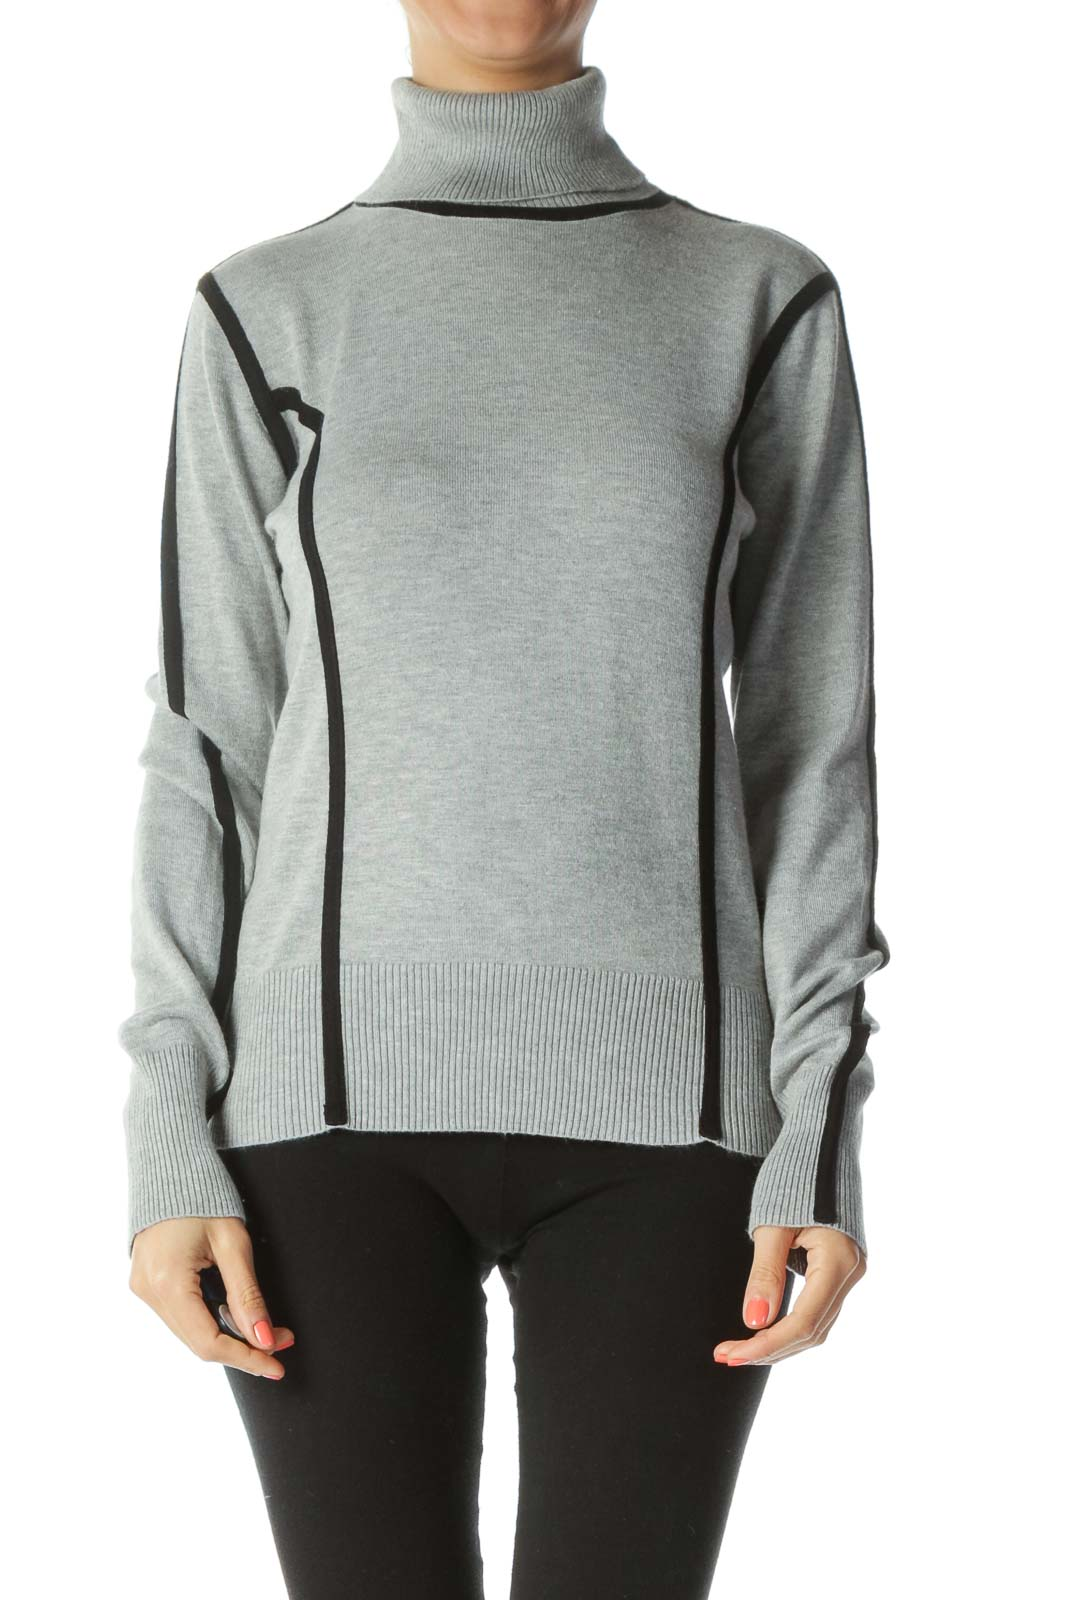 Black/Gray Turtle-Neck Contrasting-Piping Sweater Front